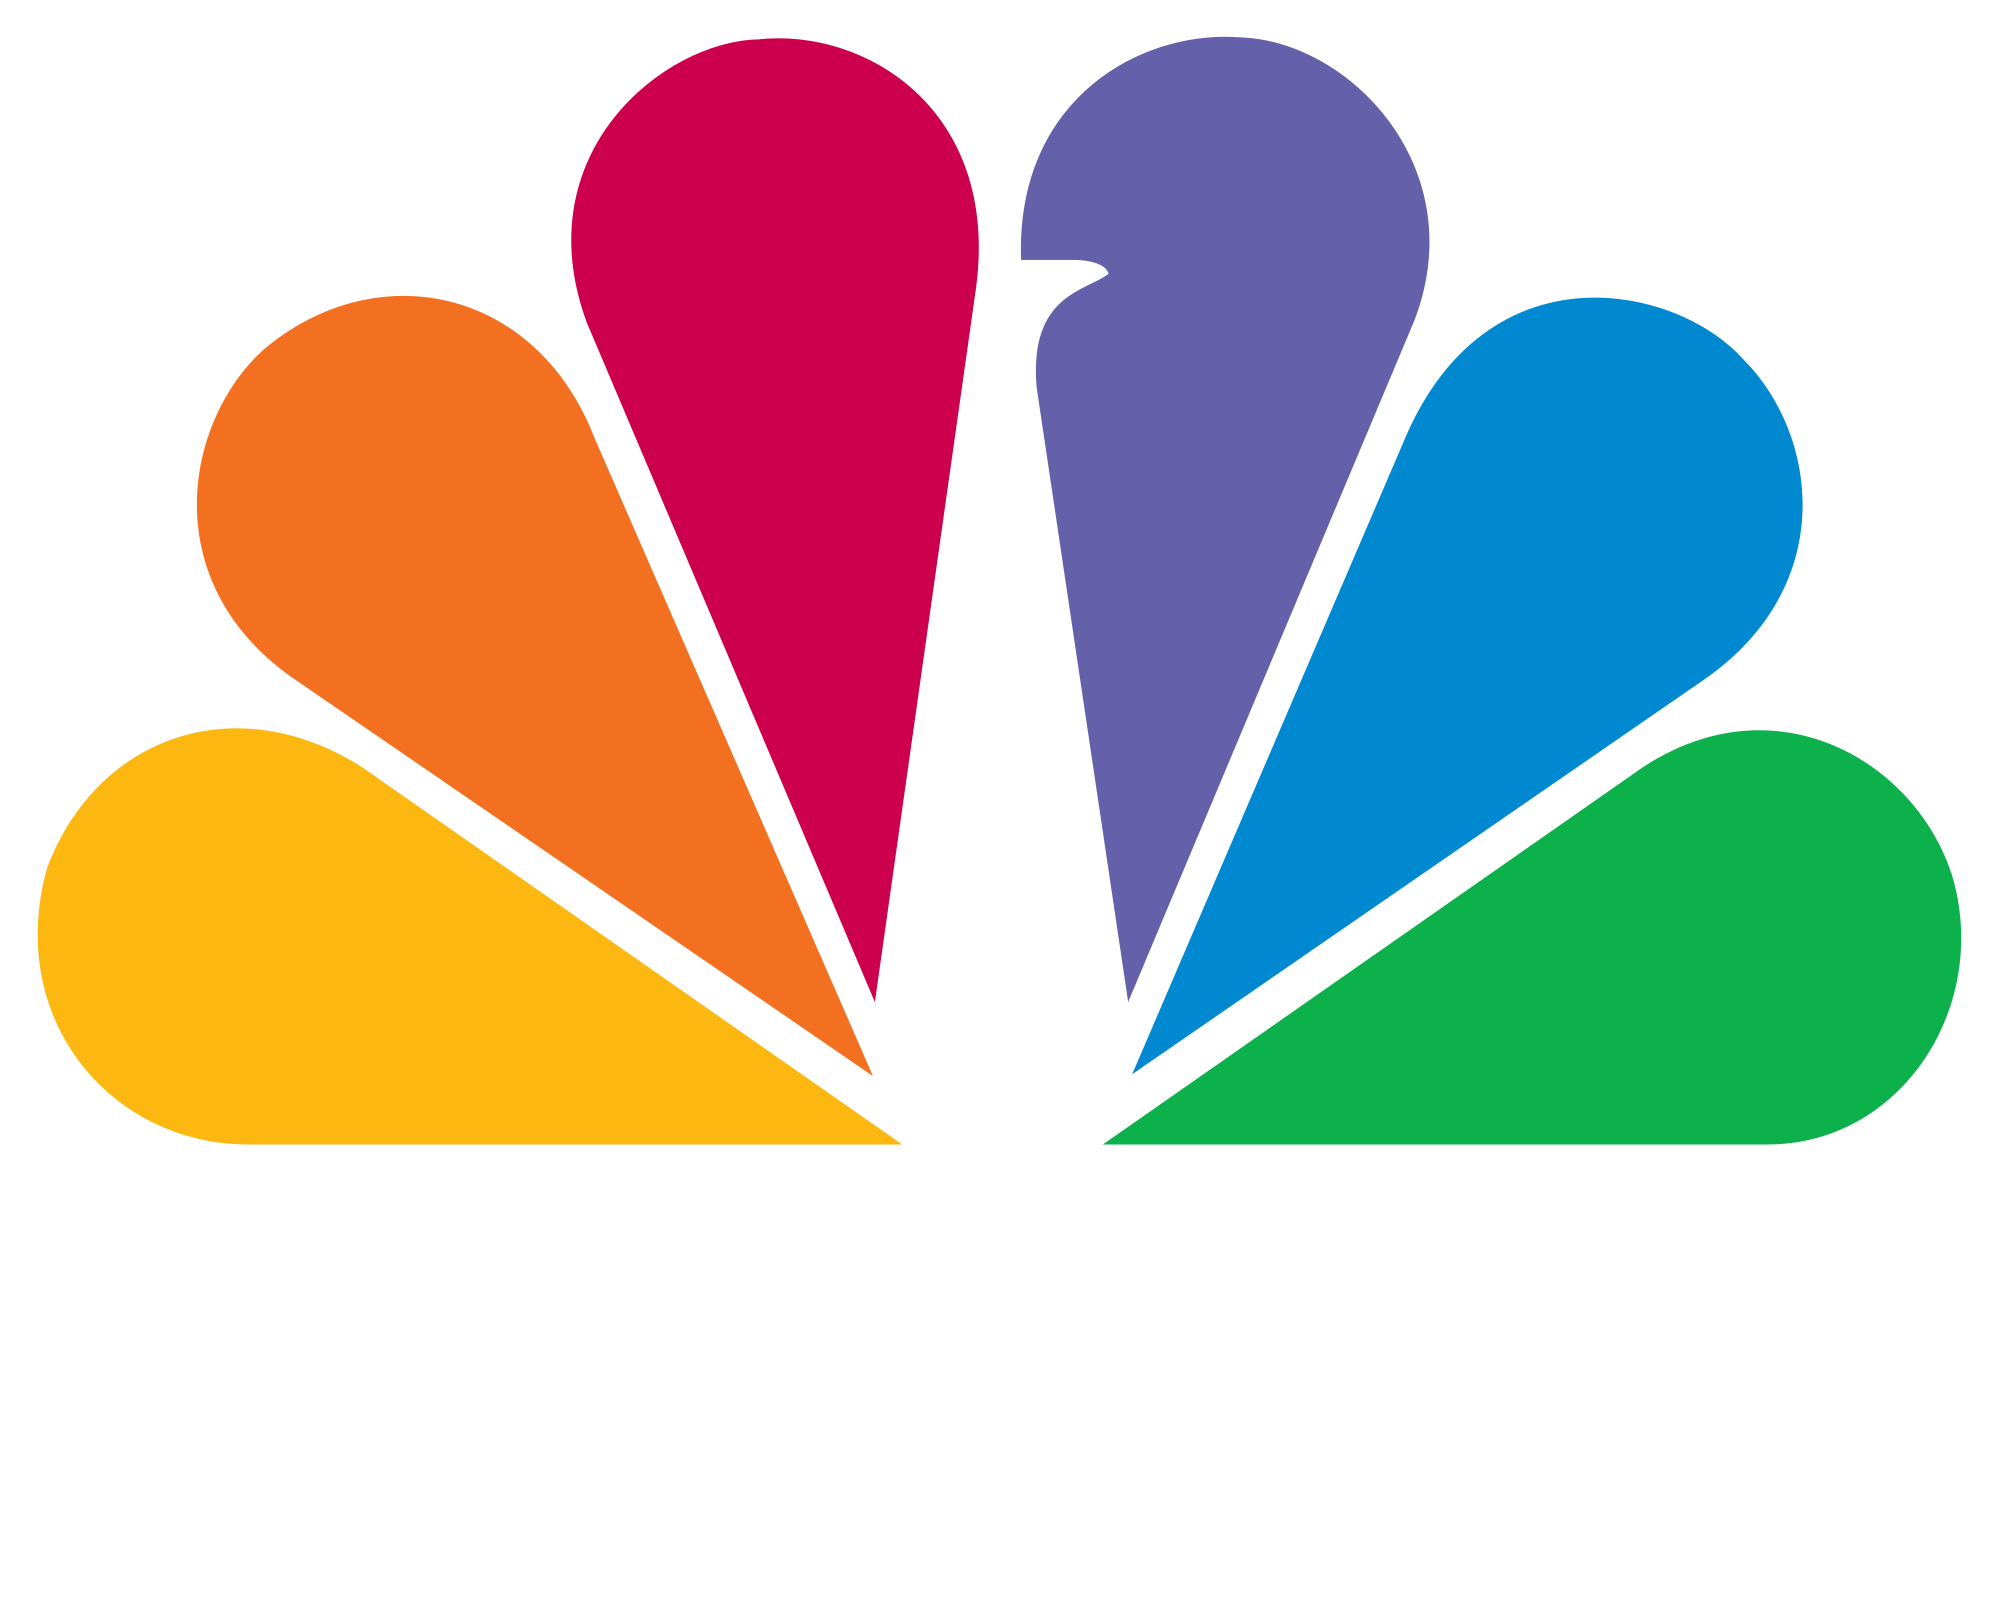 CNBC white.png